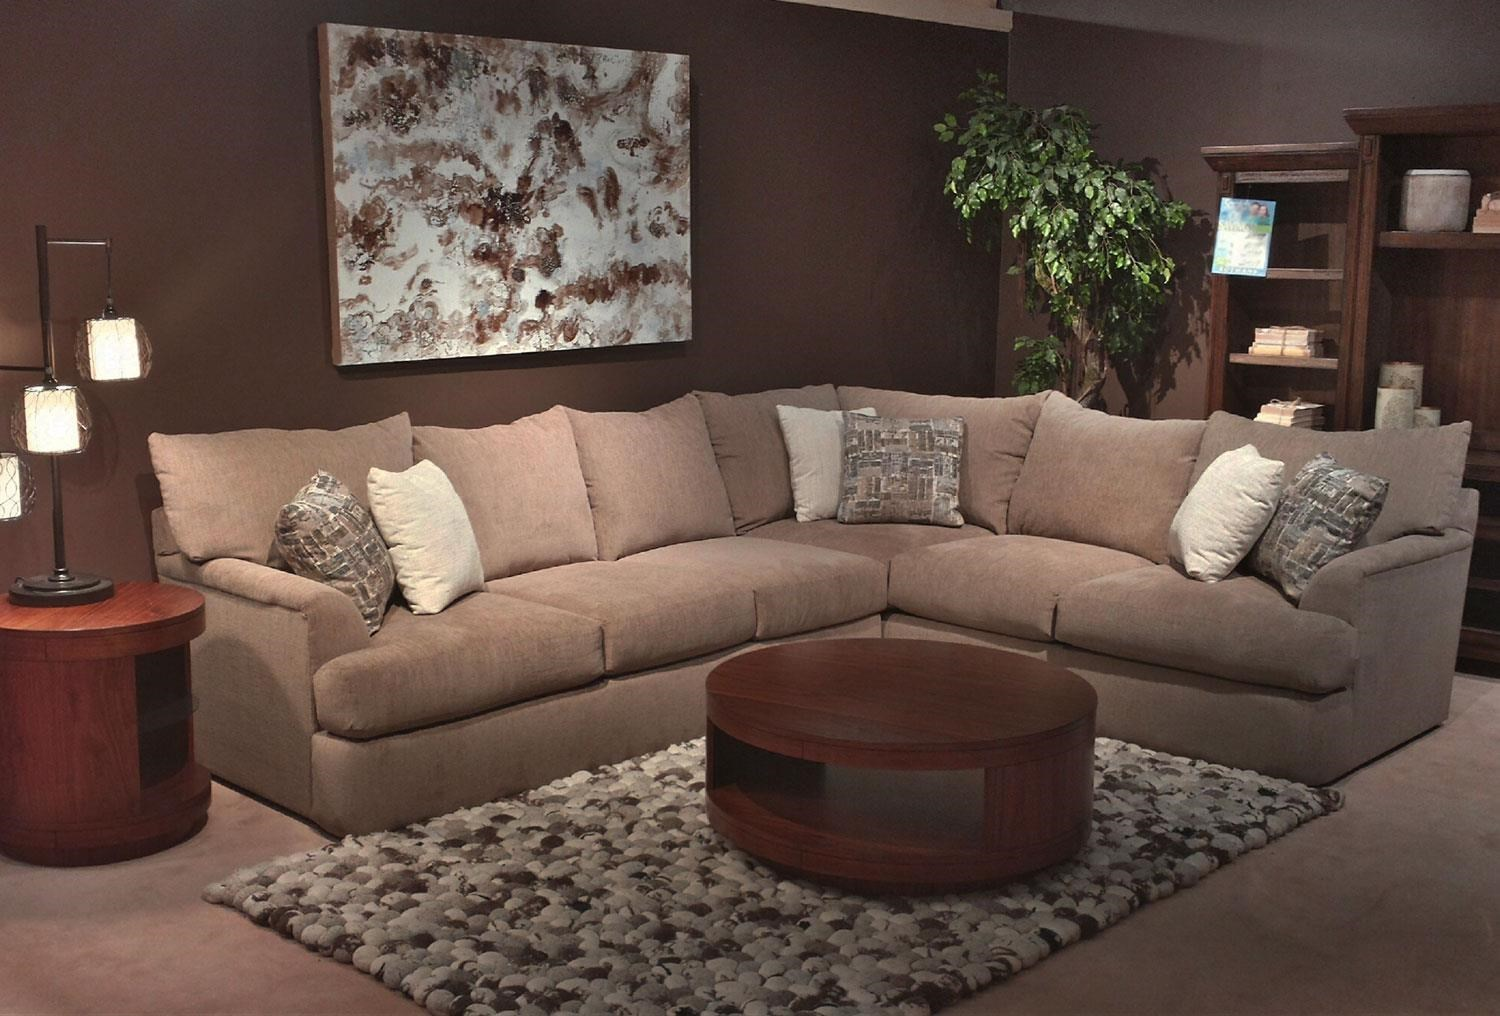 Shambala Contemporary L-Shaped Sectional Sofa